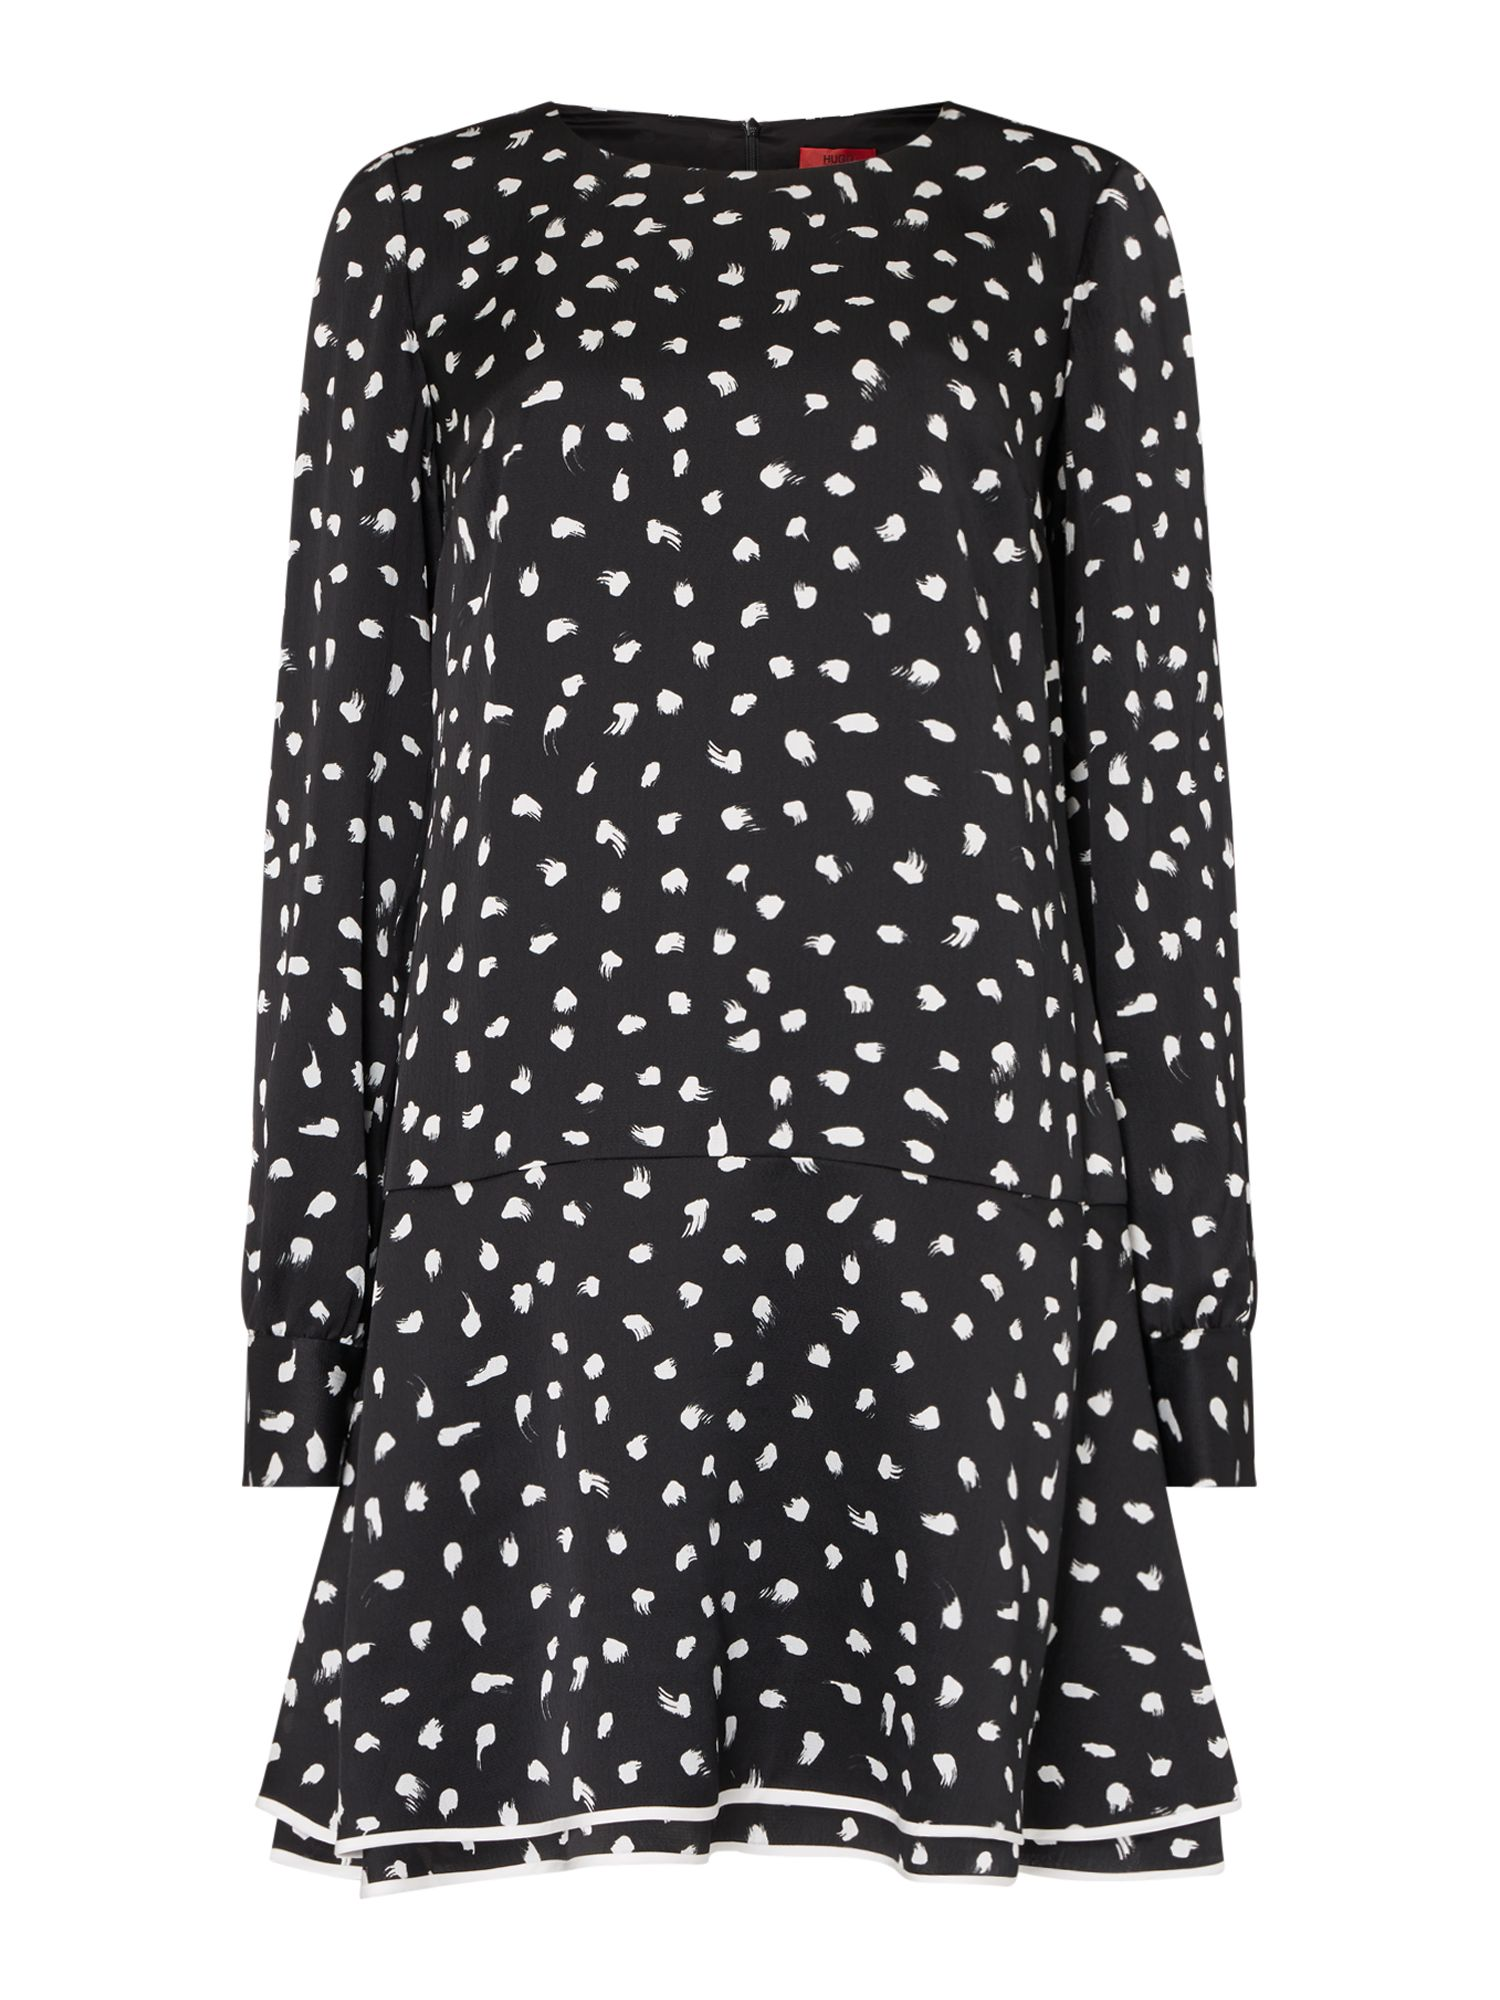 Hugo Klena paint dot dress, Black